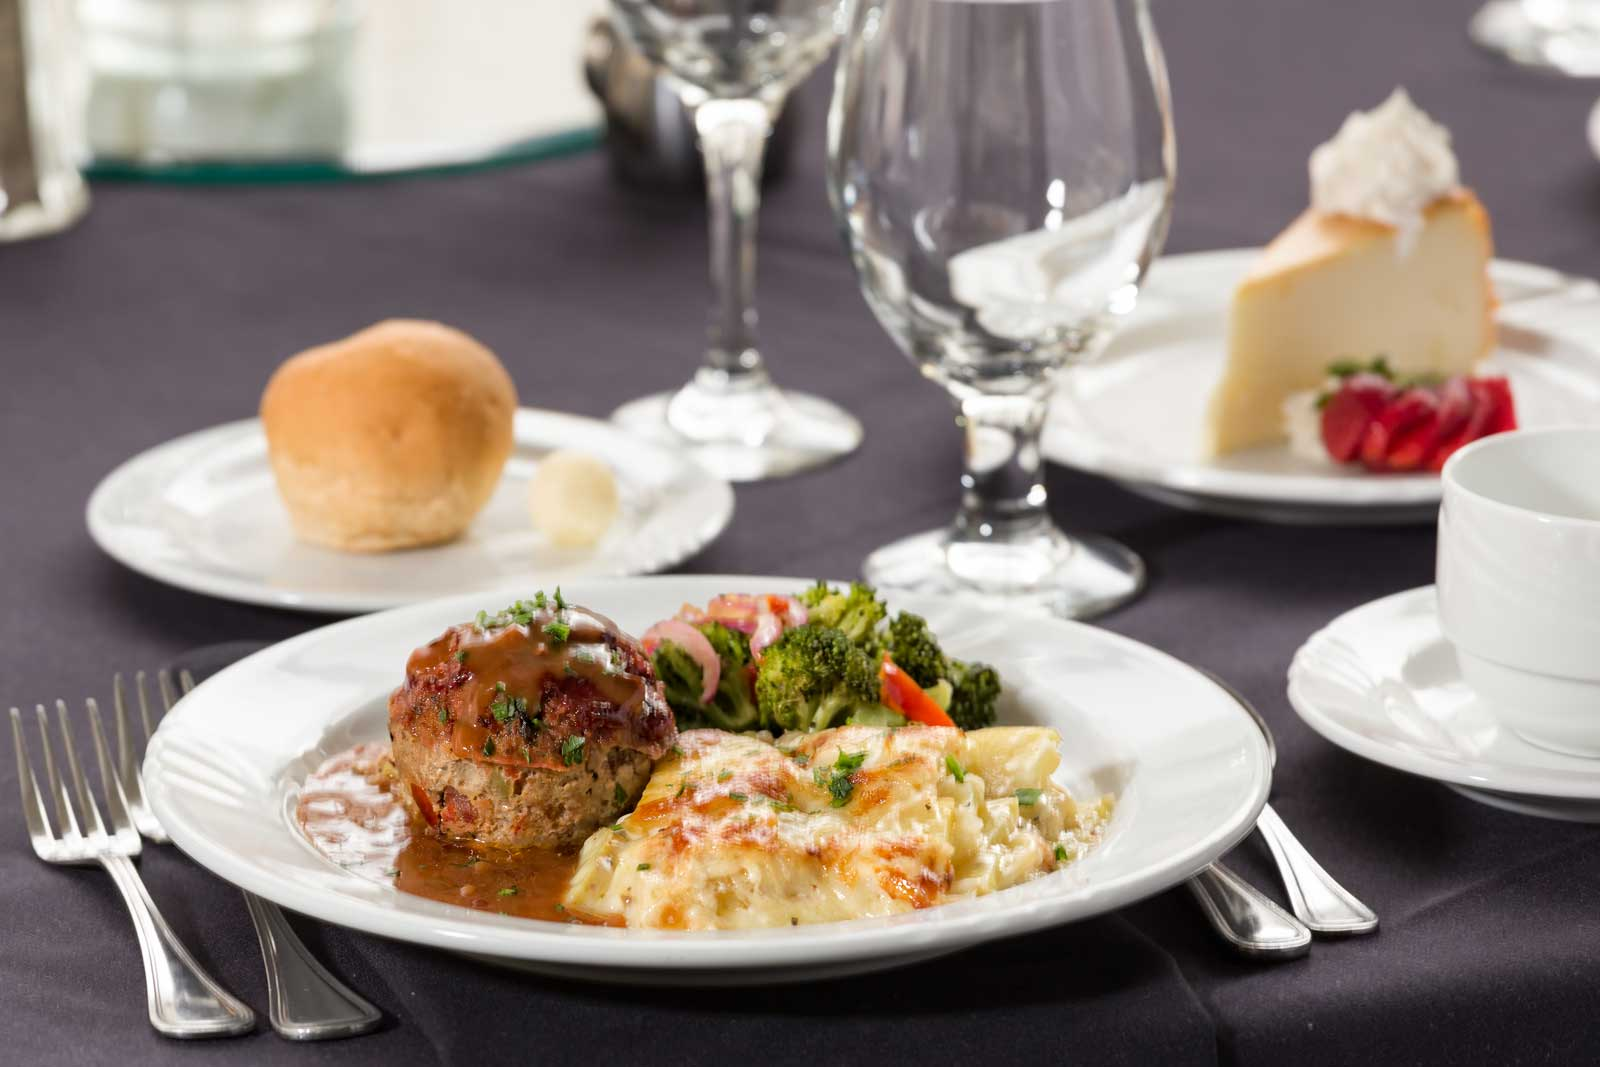 Catering By Norris Delivers Amazing Meals For Parties Weddings Dinners And All Social Occasions